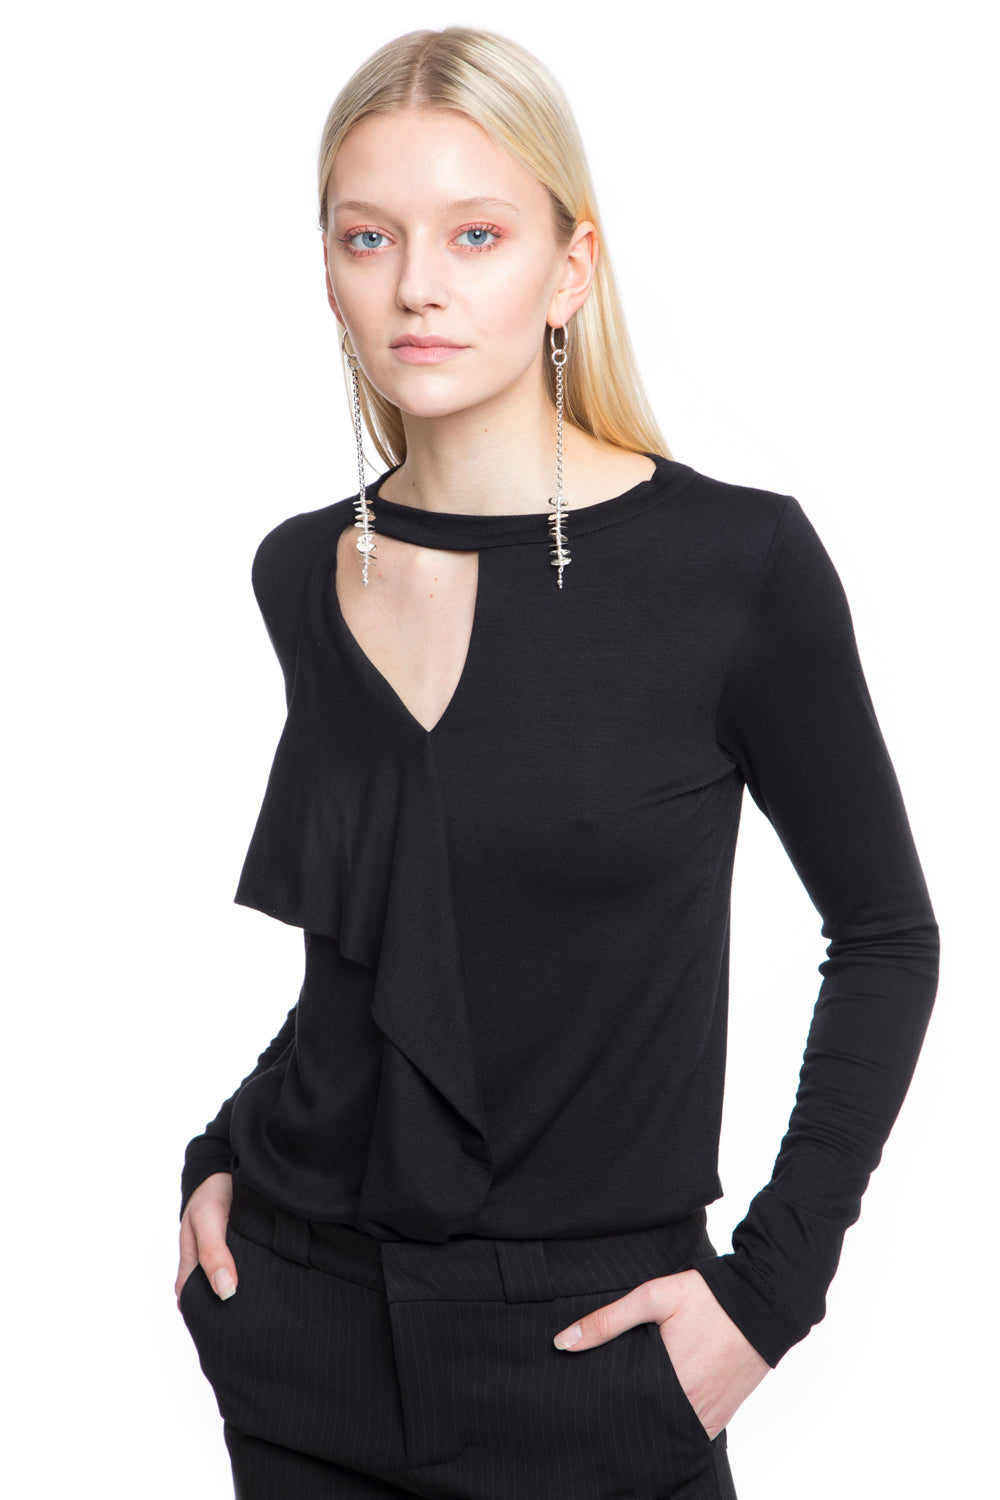 NINObrand long sleeve t-shirt with v-neck and front drape